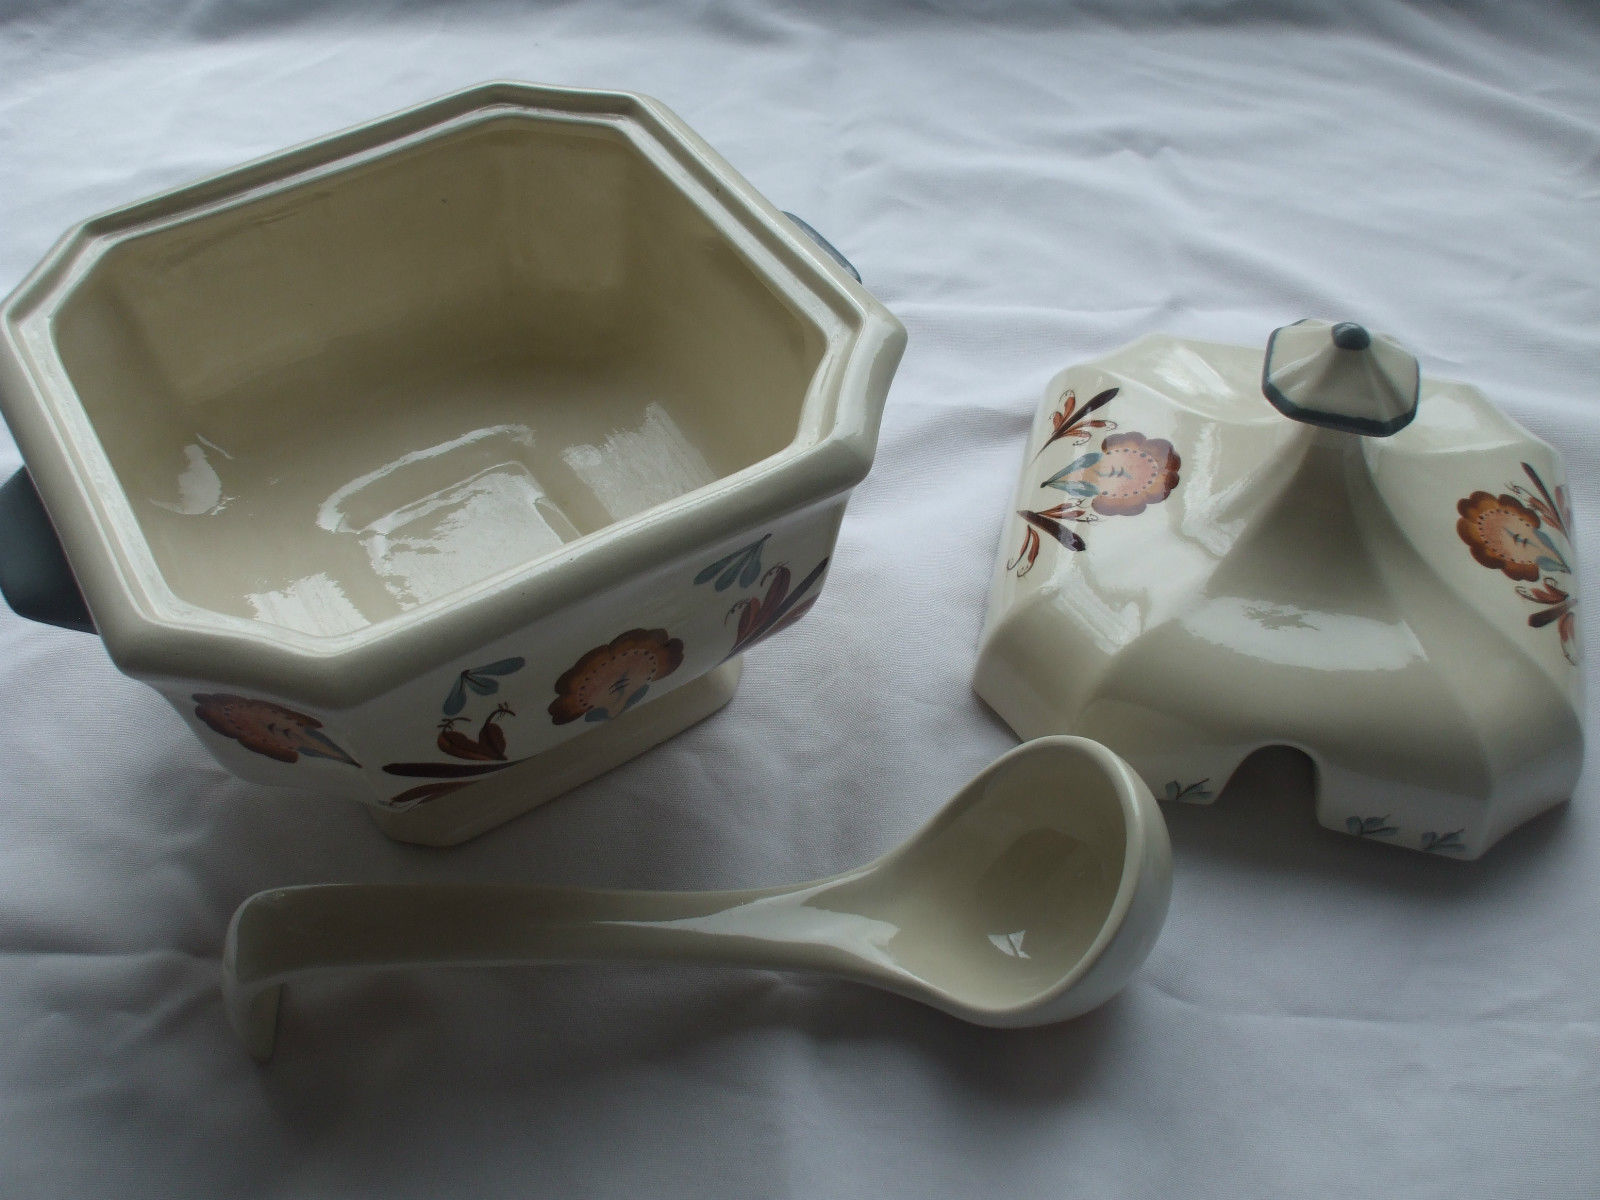 Ceramic Gravy Sauce Boat or Soup Server With Lid And Ladle Off White